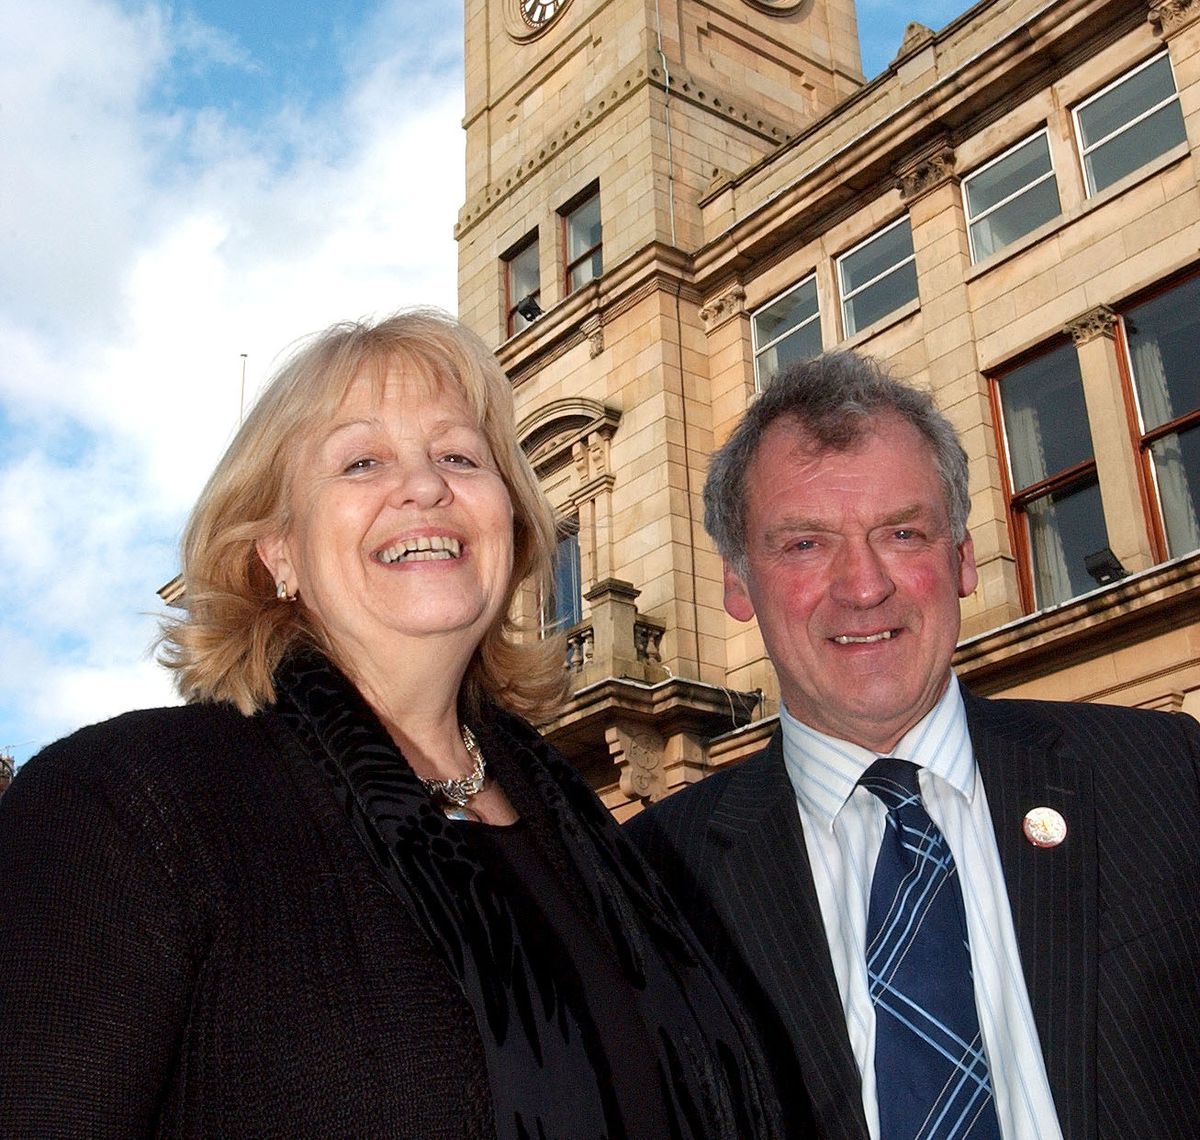 Dame Cheryl with the then Montgomeryshire MP Glyn Davies during a visit to Welshpool